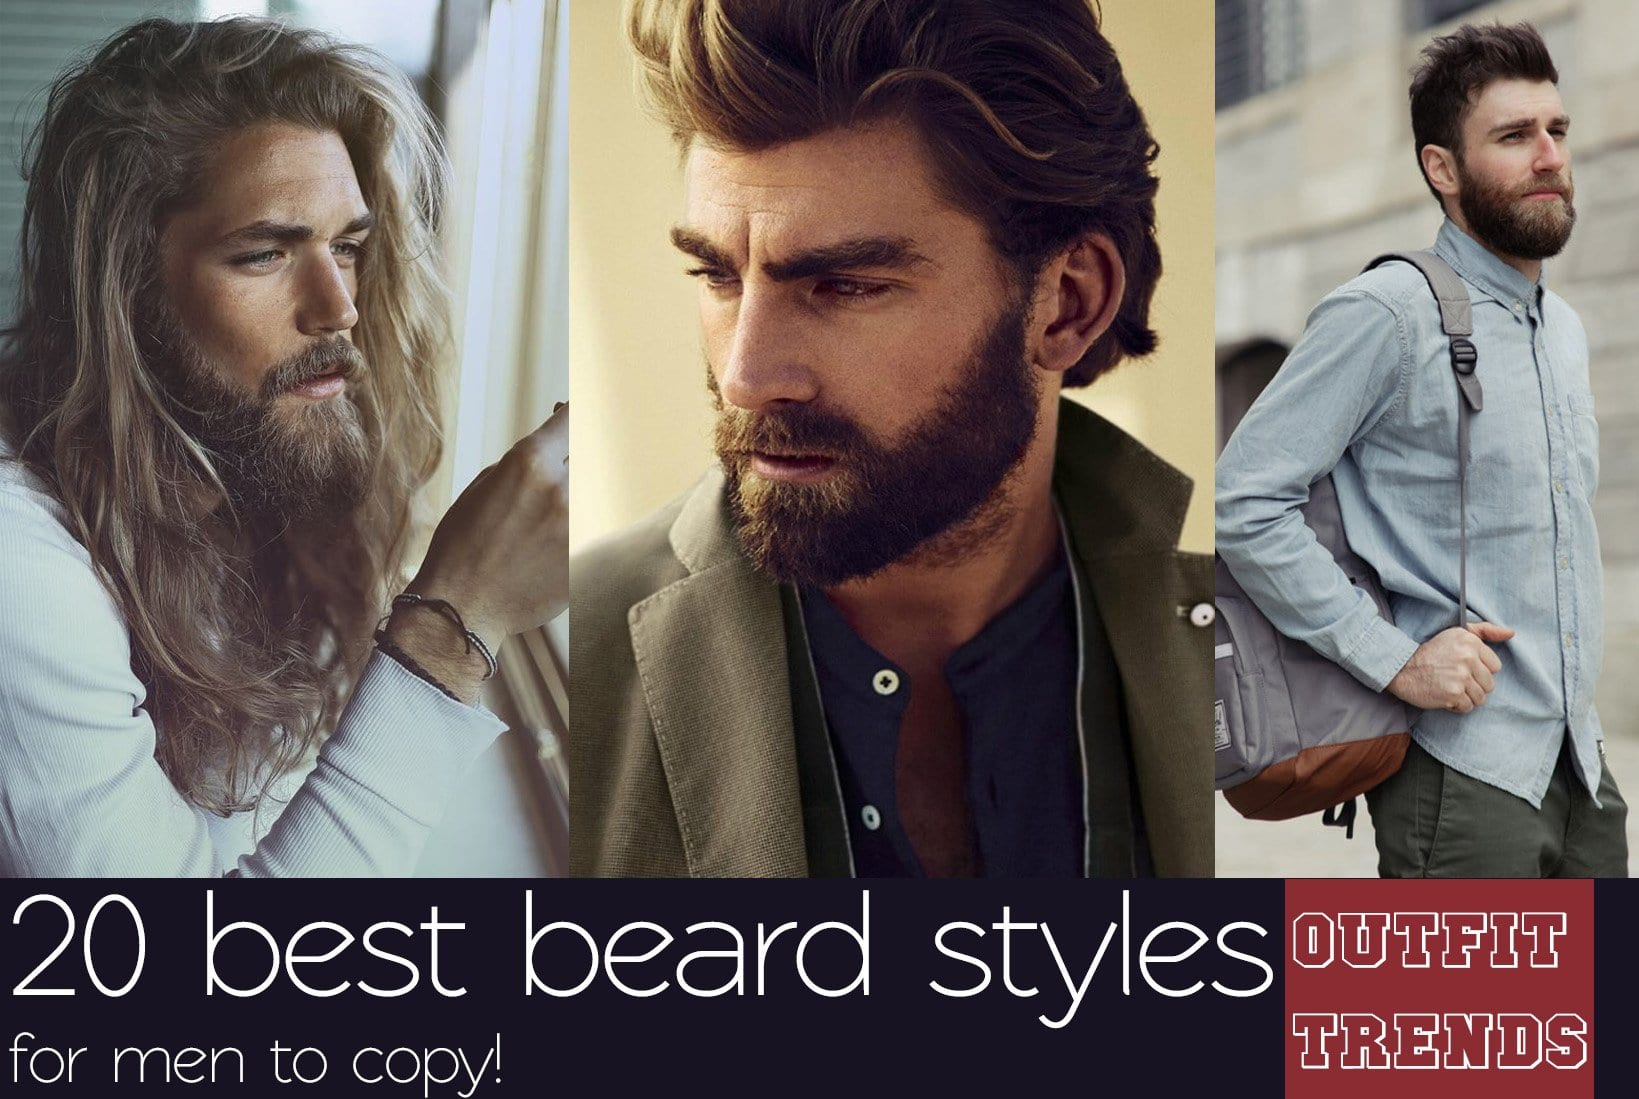 full-beard-styles Full Beard Styles and Tips on Growing and Styling Full Beard